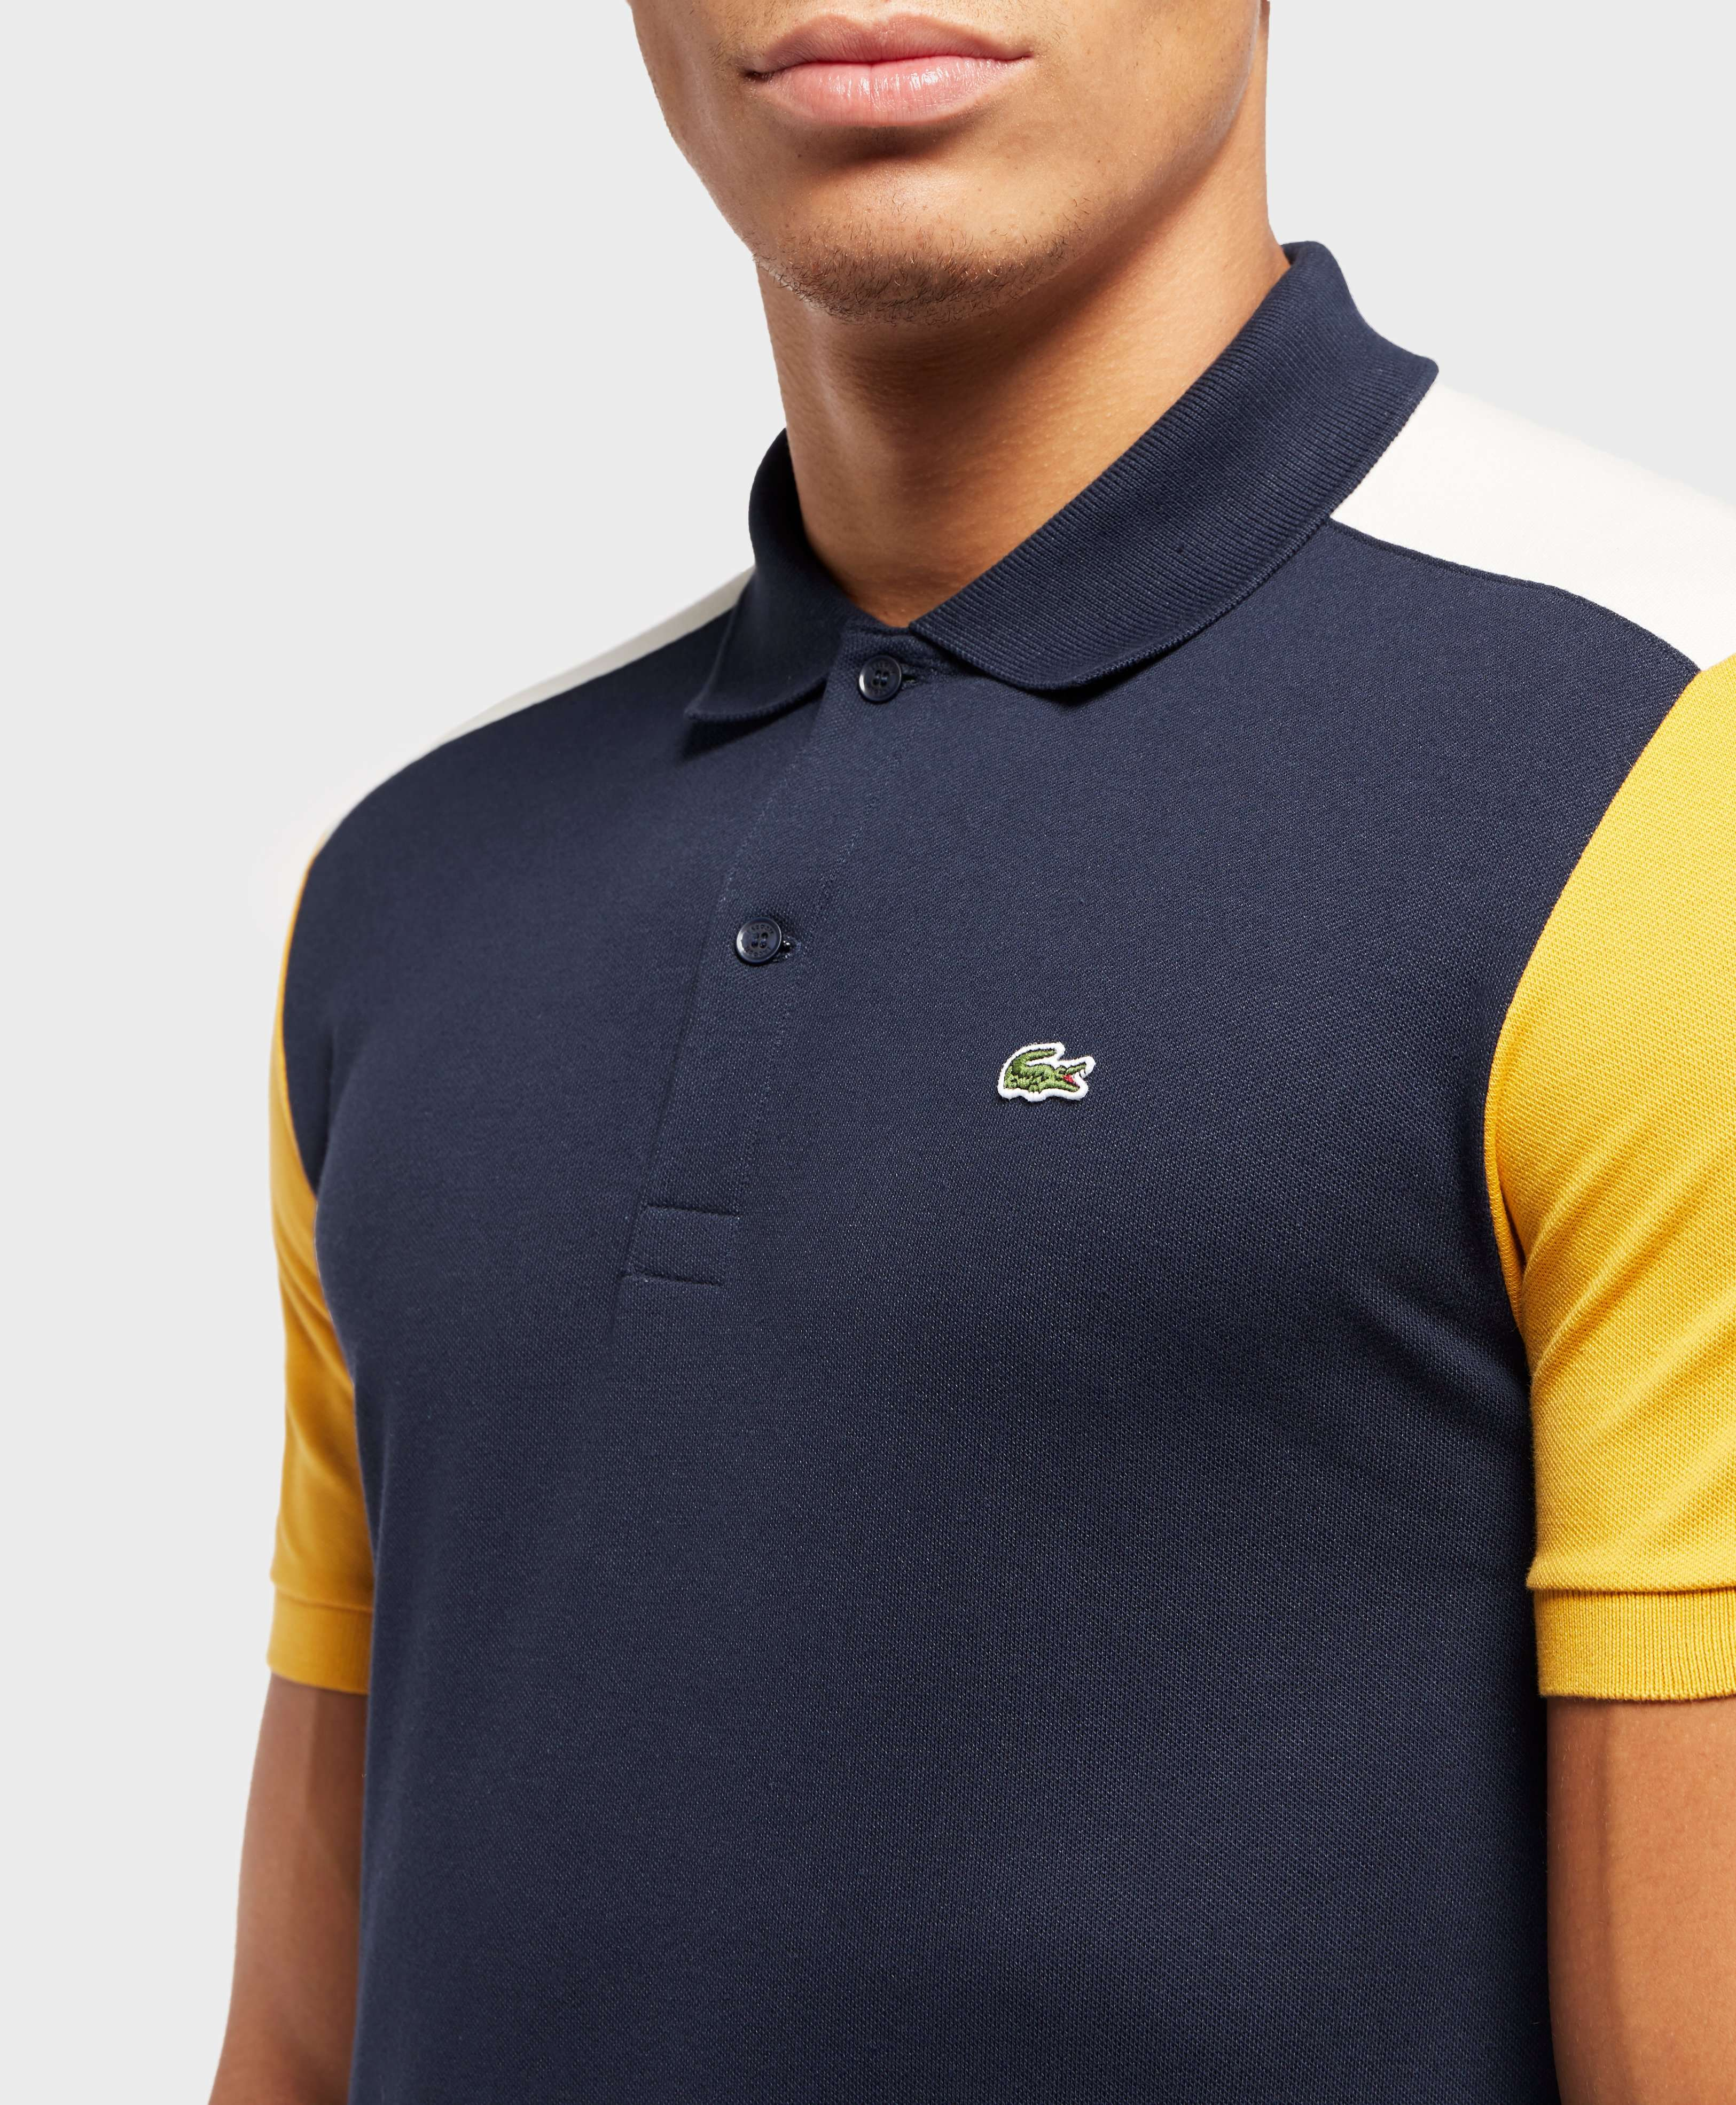 Lacoste Block Sleeve Short Sleeve Polo Shirt